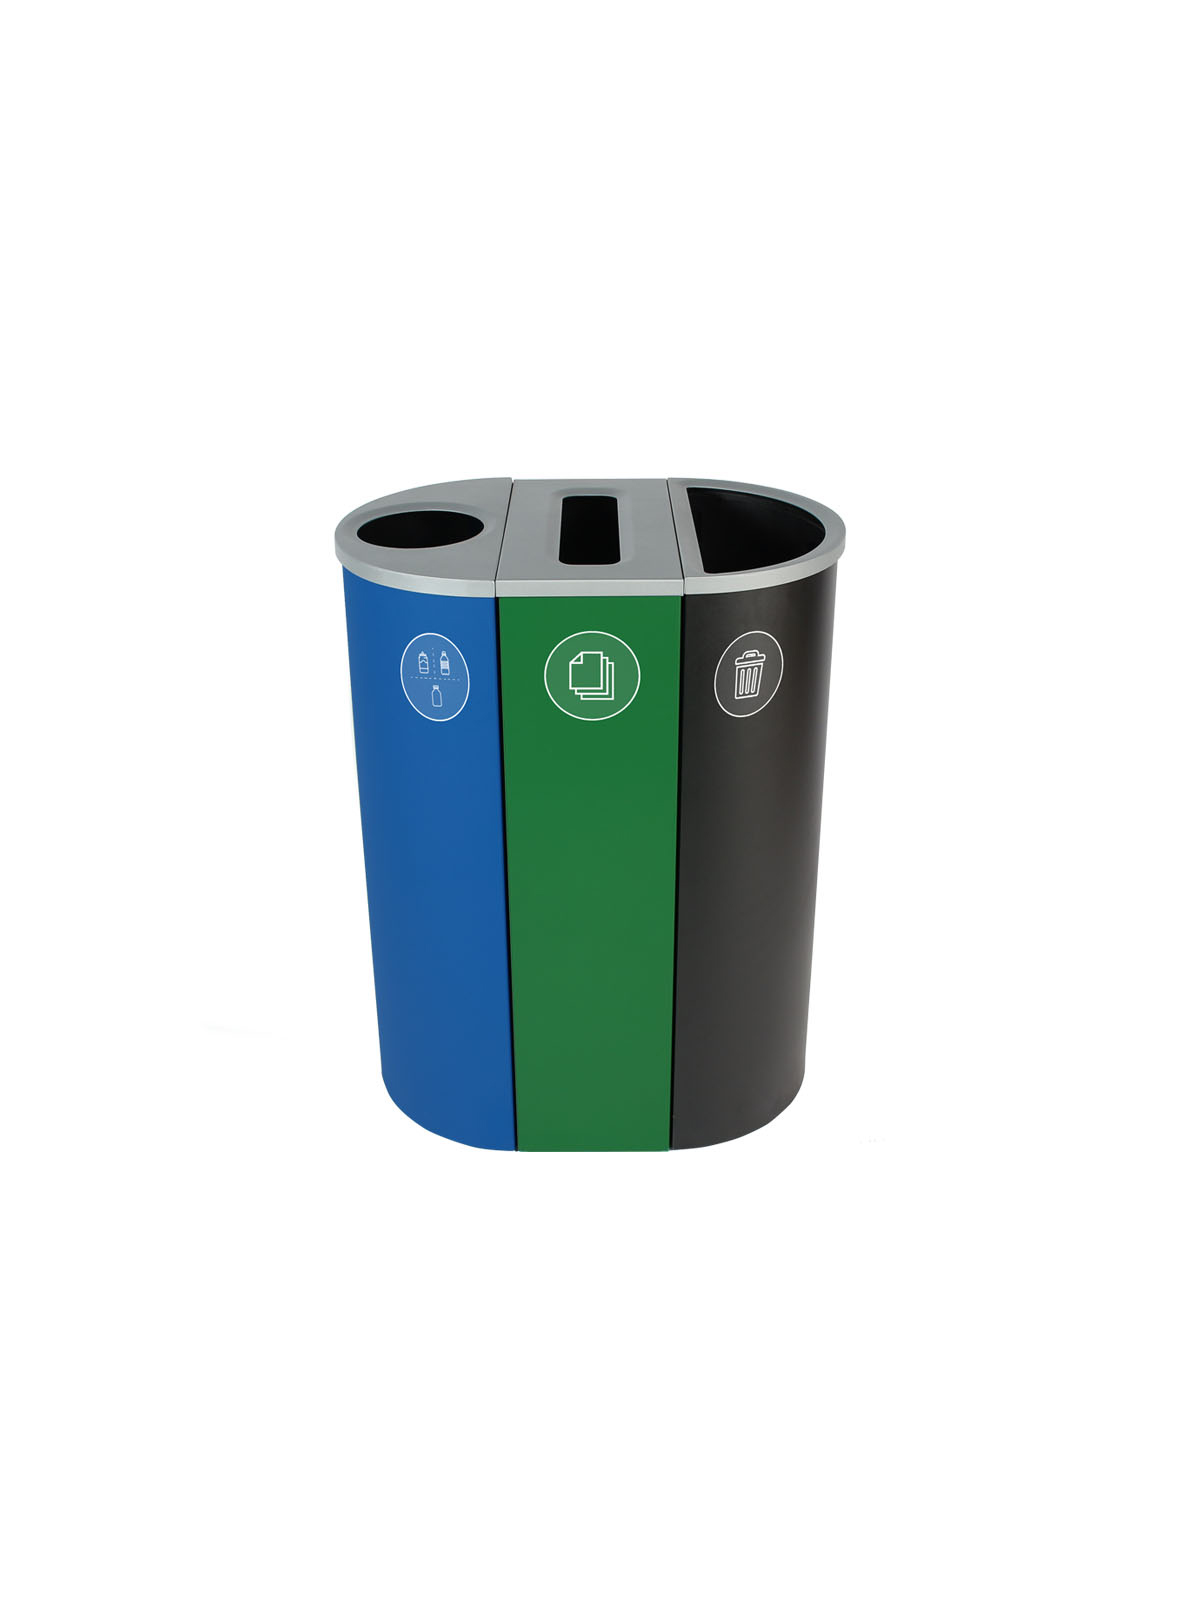 SPECTRUM - Triple - Nyc Compliant - Metal, Glass, Plastic & Beverage Containers-Paper-Garbage - Circle-Slot-Full - Blue-Green-Black title=